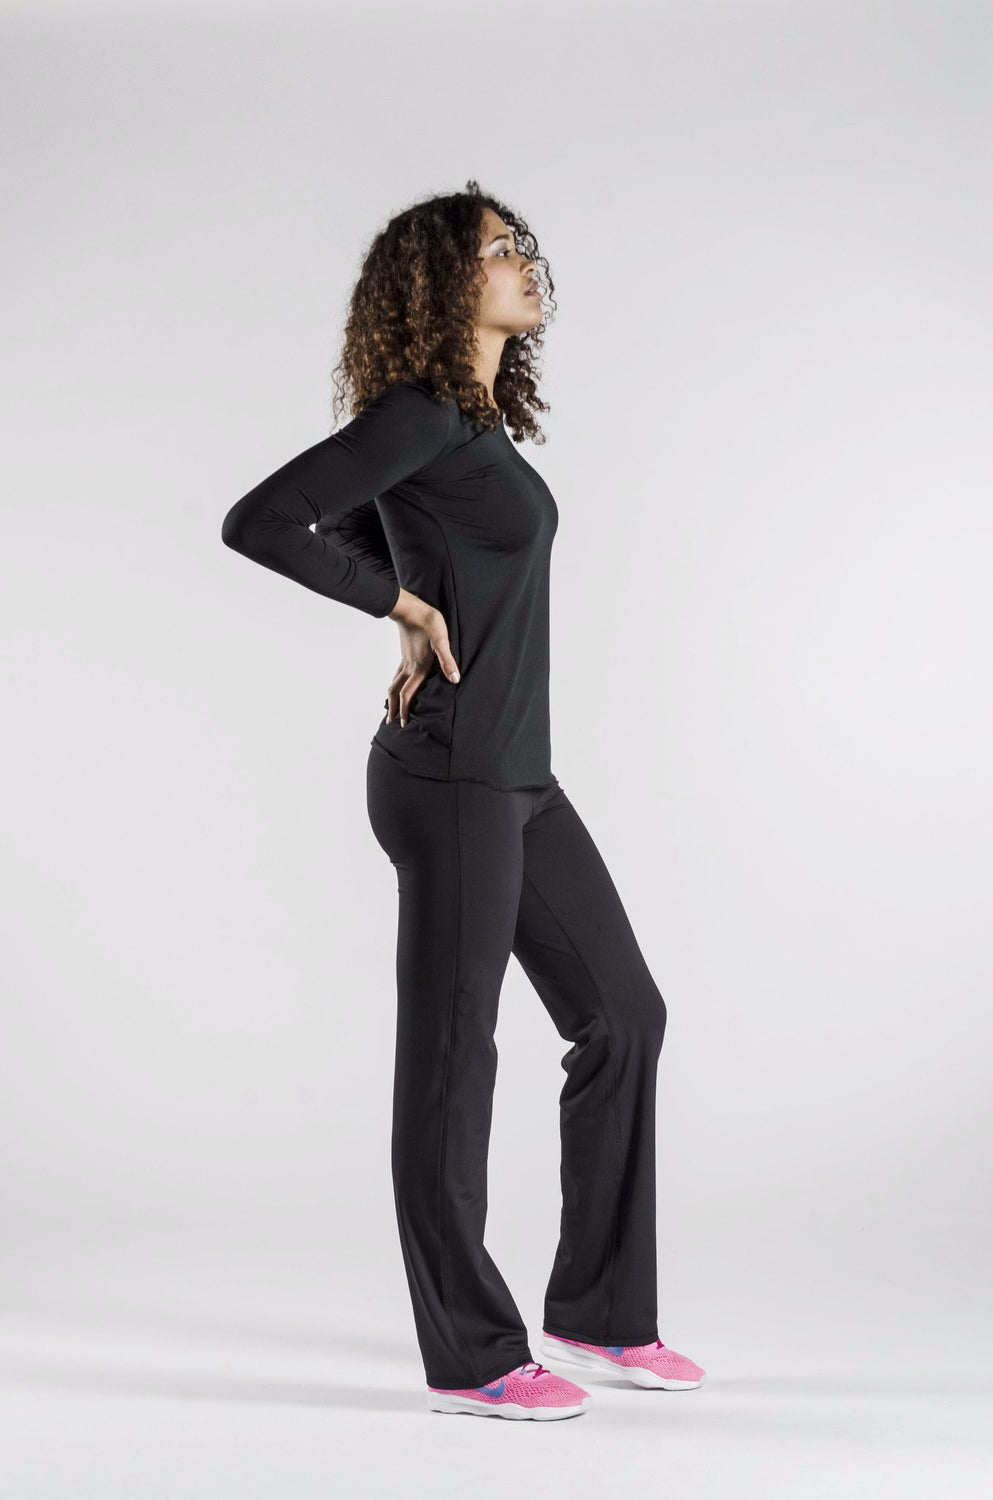 Modest activewear Pant | The Modest Pant